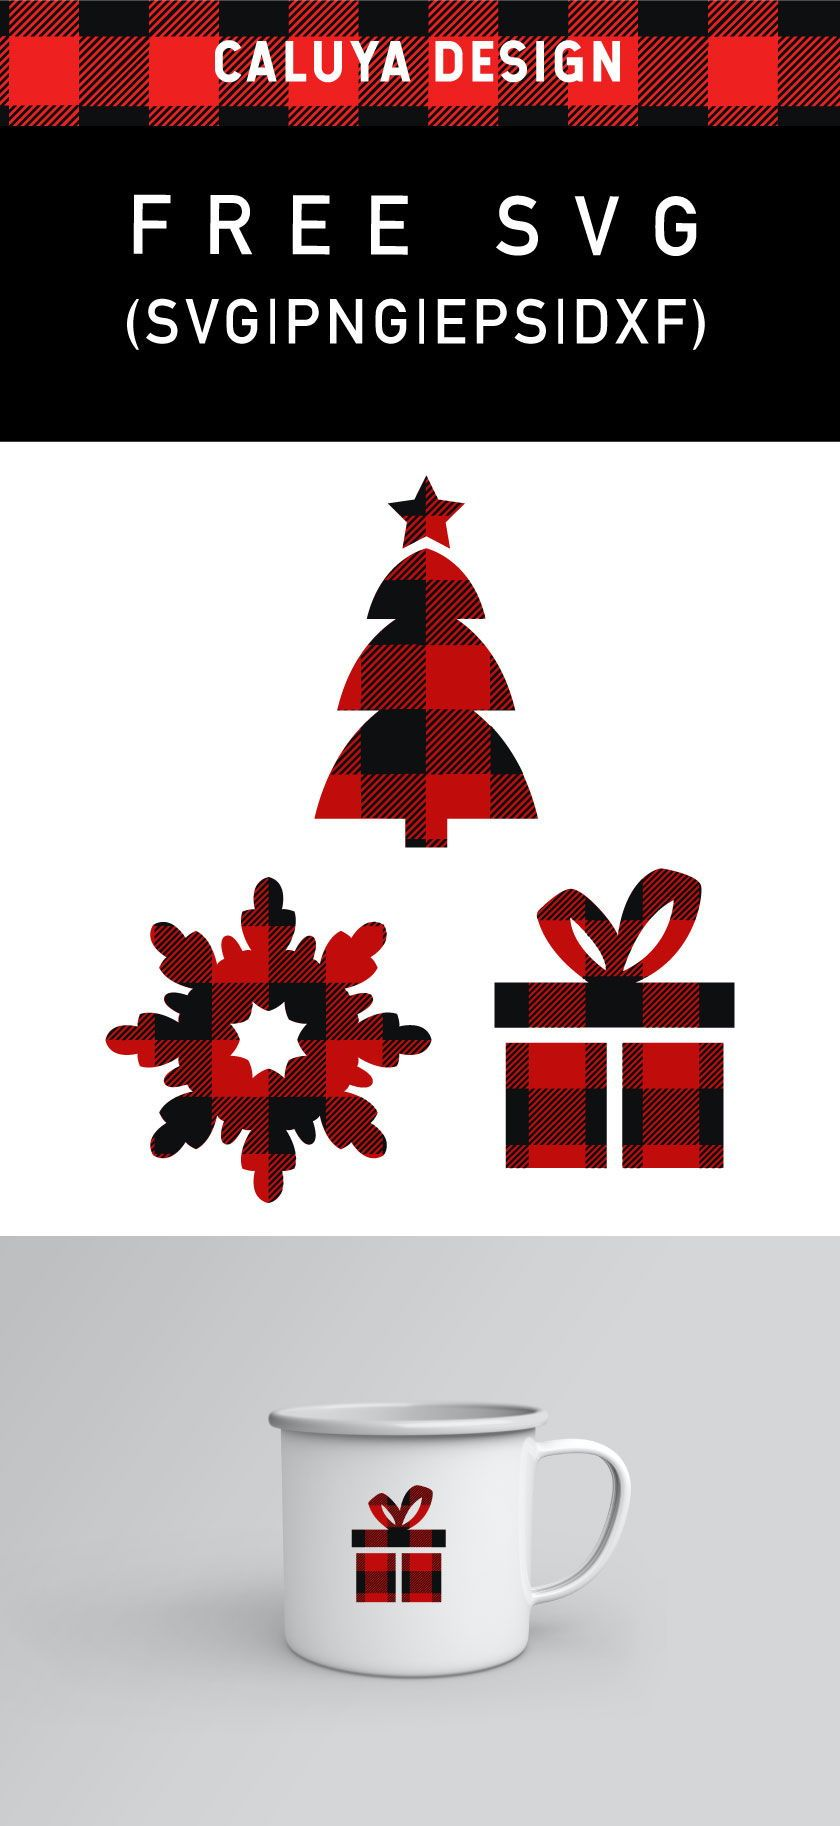 Free Plaid Christmas Elements SVG, PNG, EPS & DXF by Caluya Design. #cricutcrafts